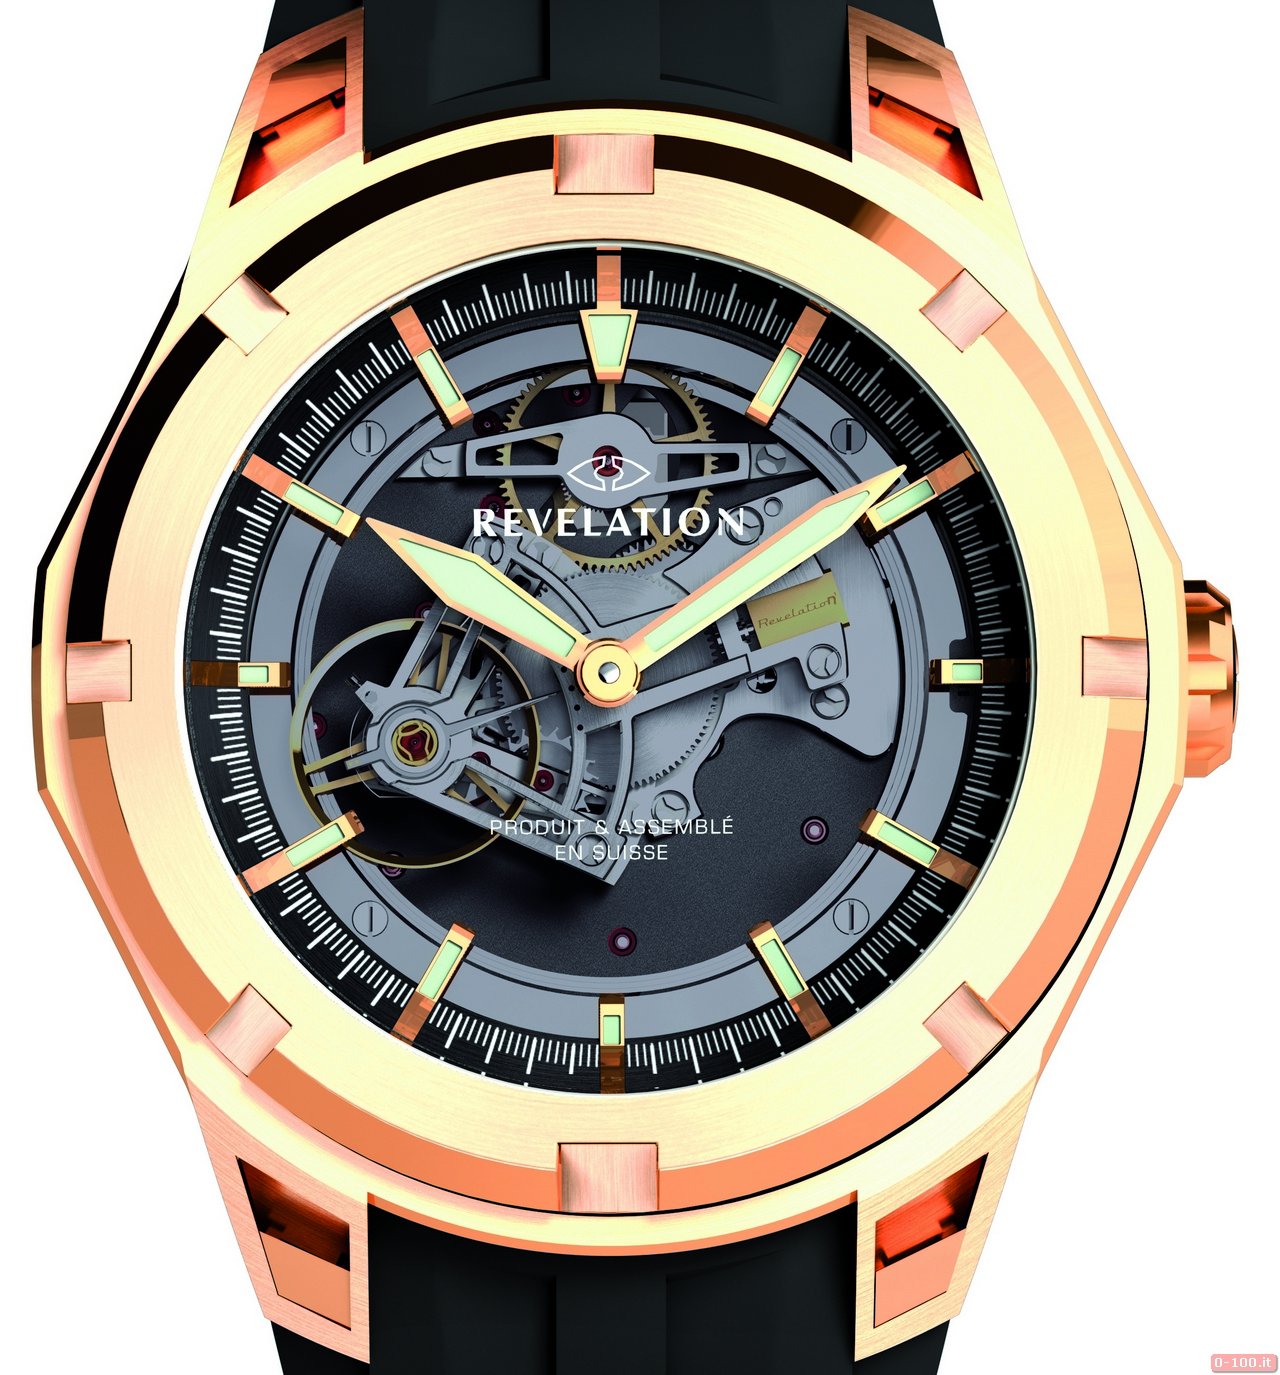 anteprima-baselword-2013-revelation-r04-tourbillon-magical-watch-dial_0-100_2